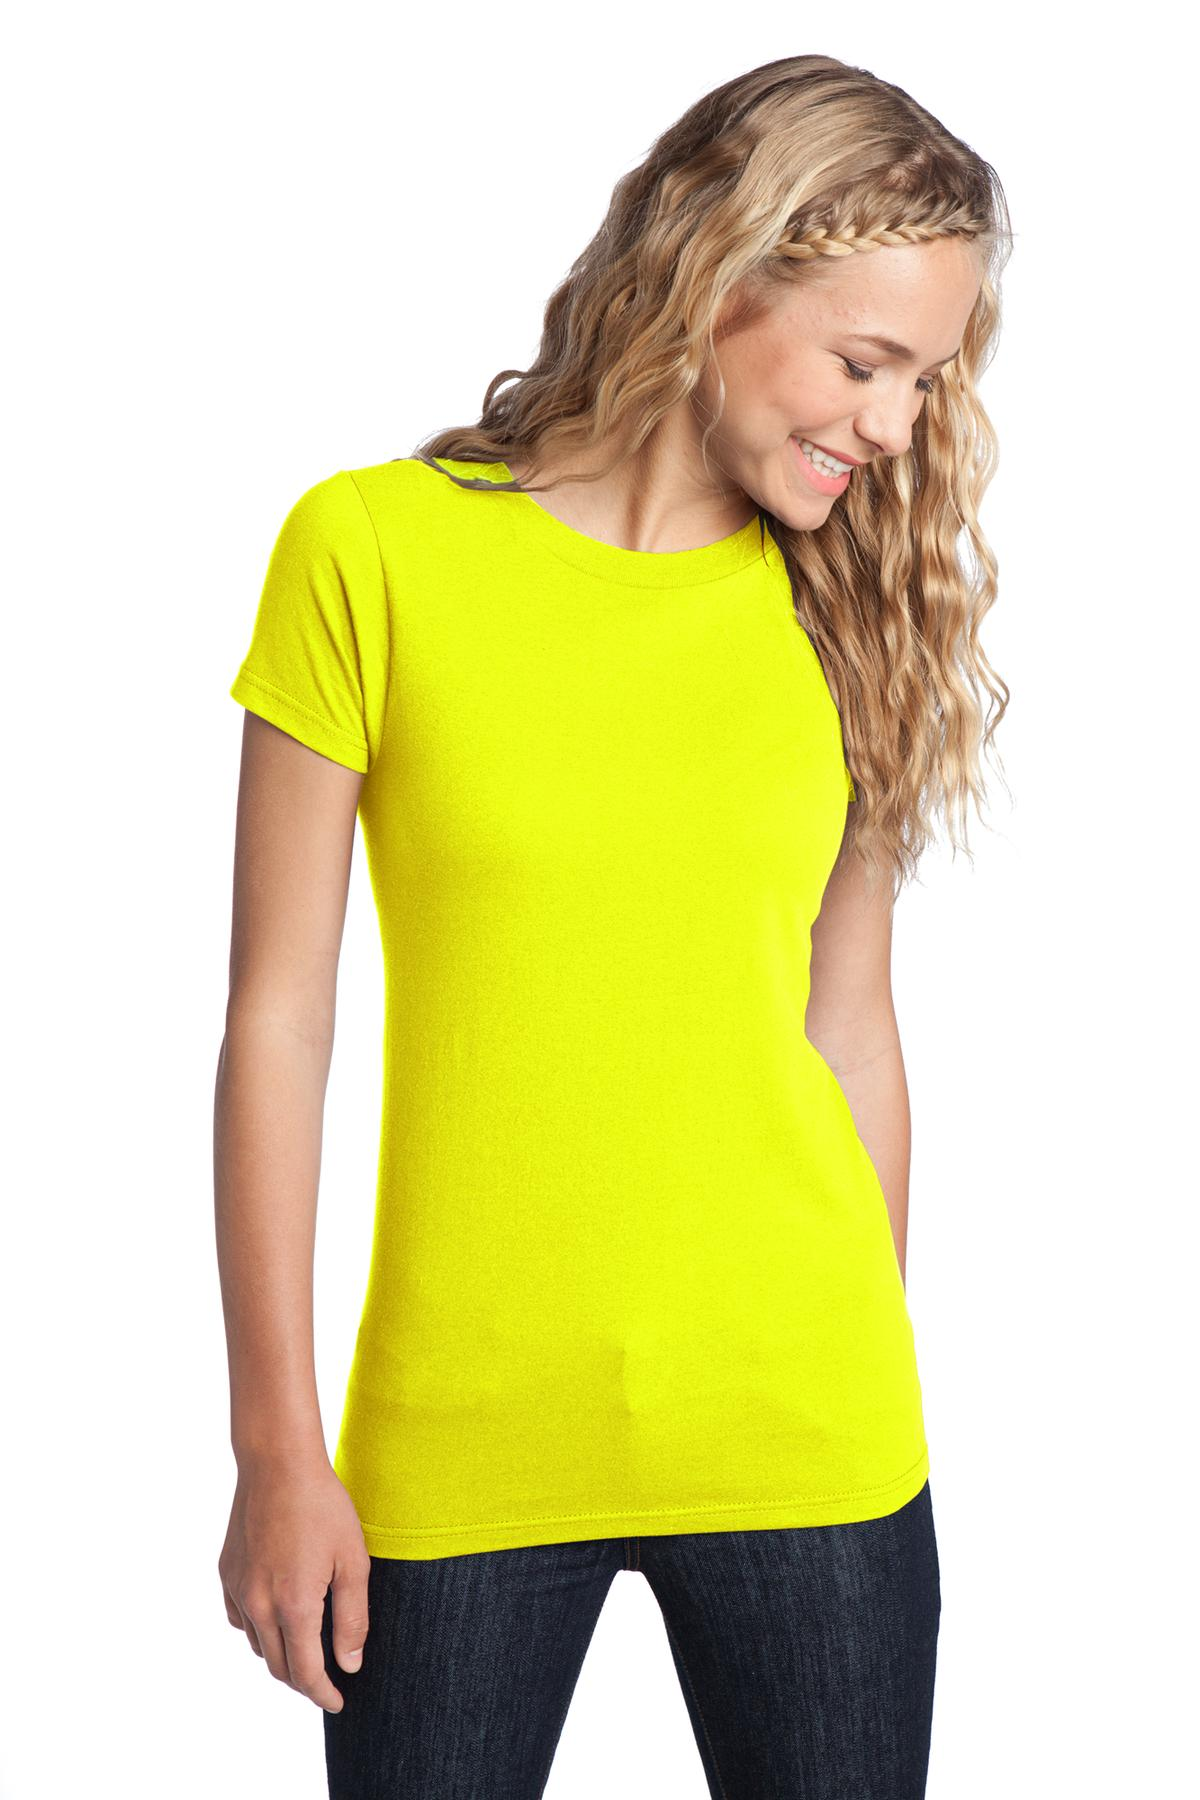 District ®  Women's Fitted The Concert Tee ®  DT5001 - Neon Yellow